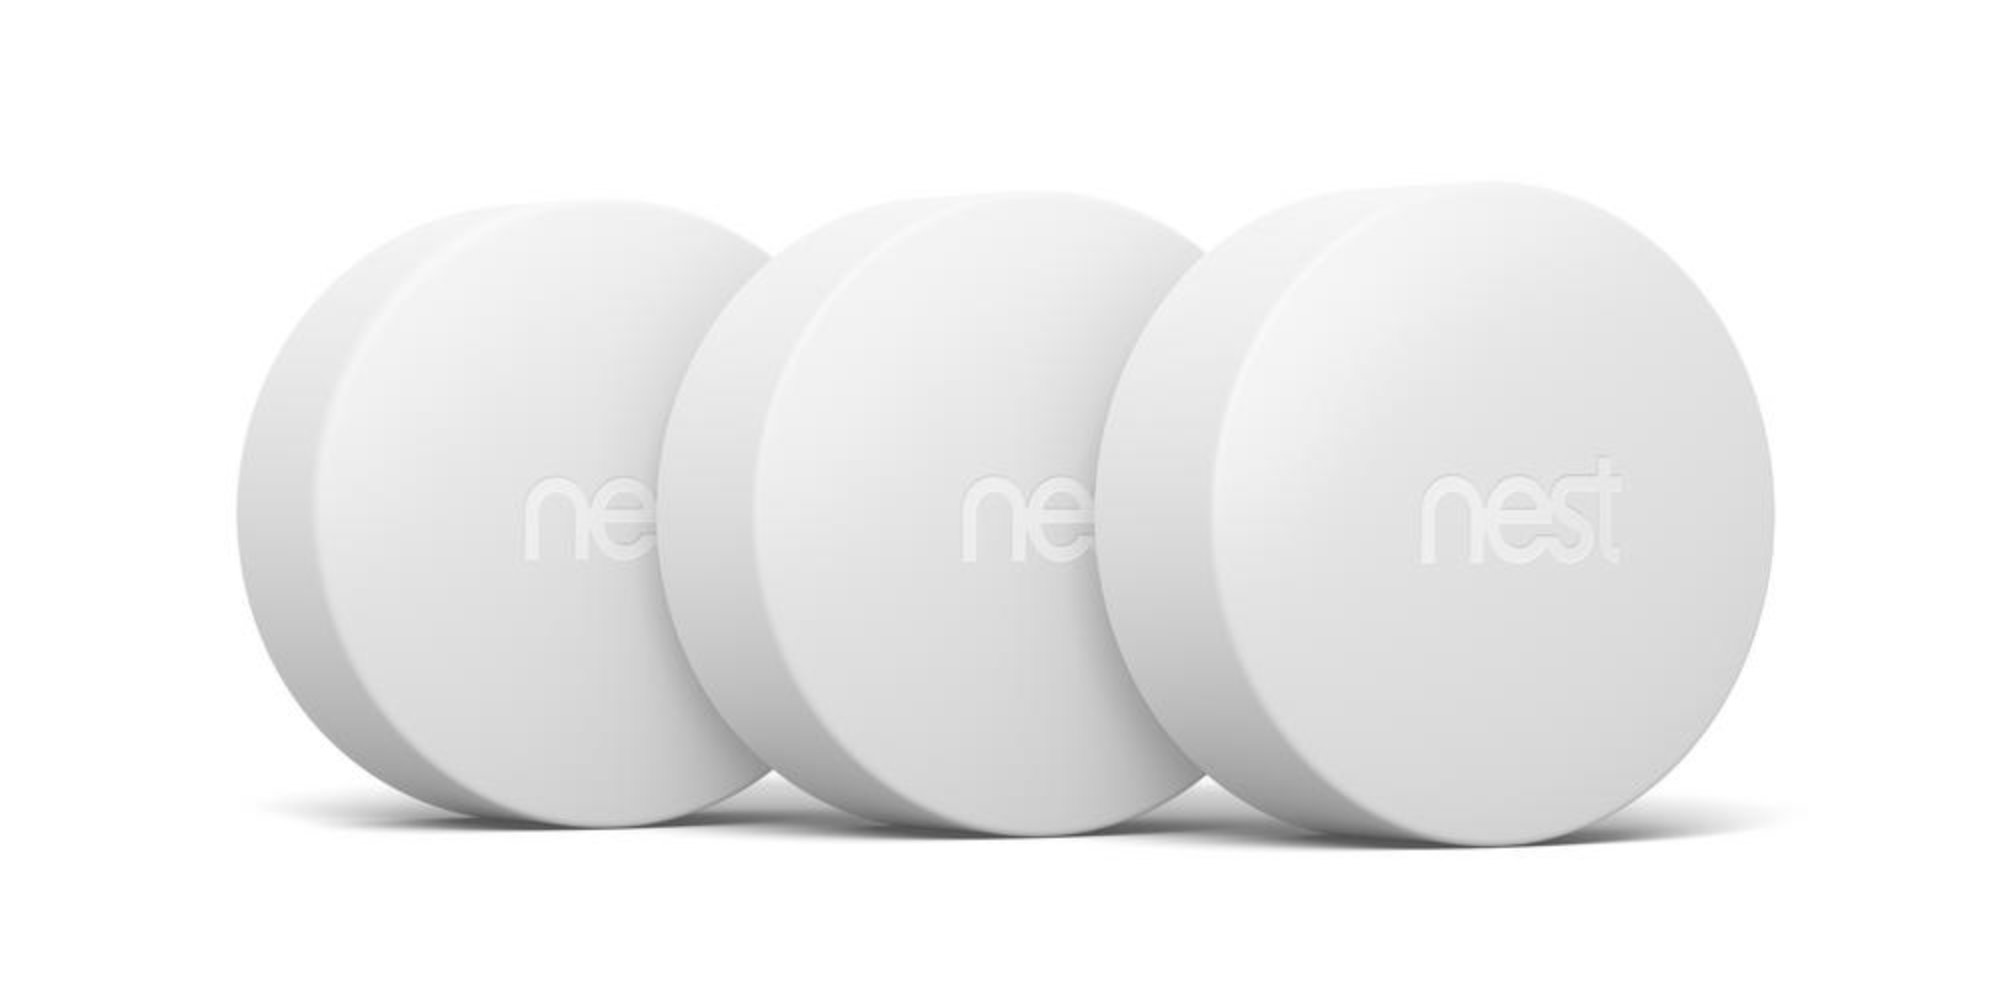 Got a favorite room? Make it feel just right w/ a 3-pack of Nest Temp Sensors for $80 (Reg. $100)